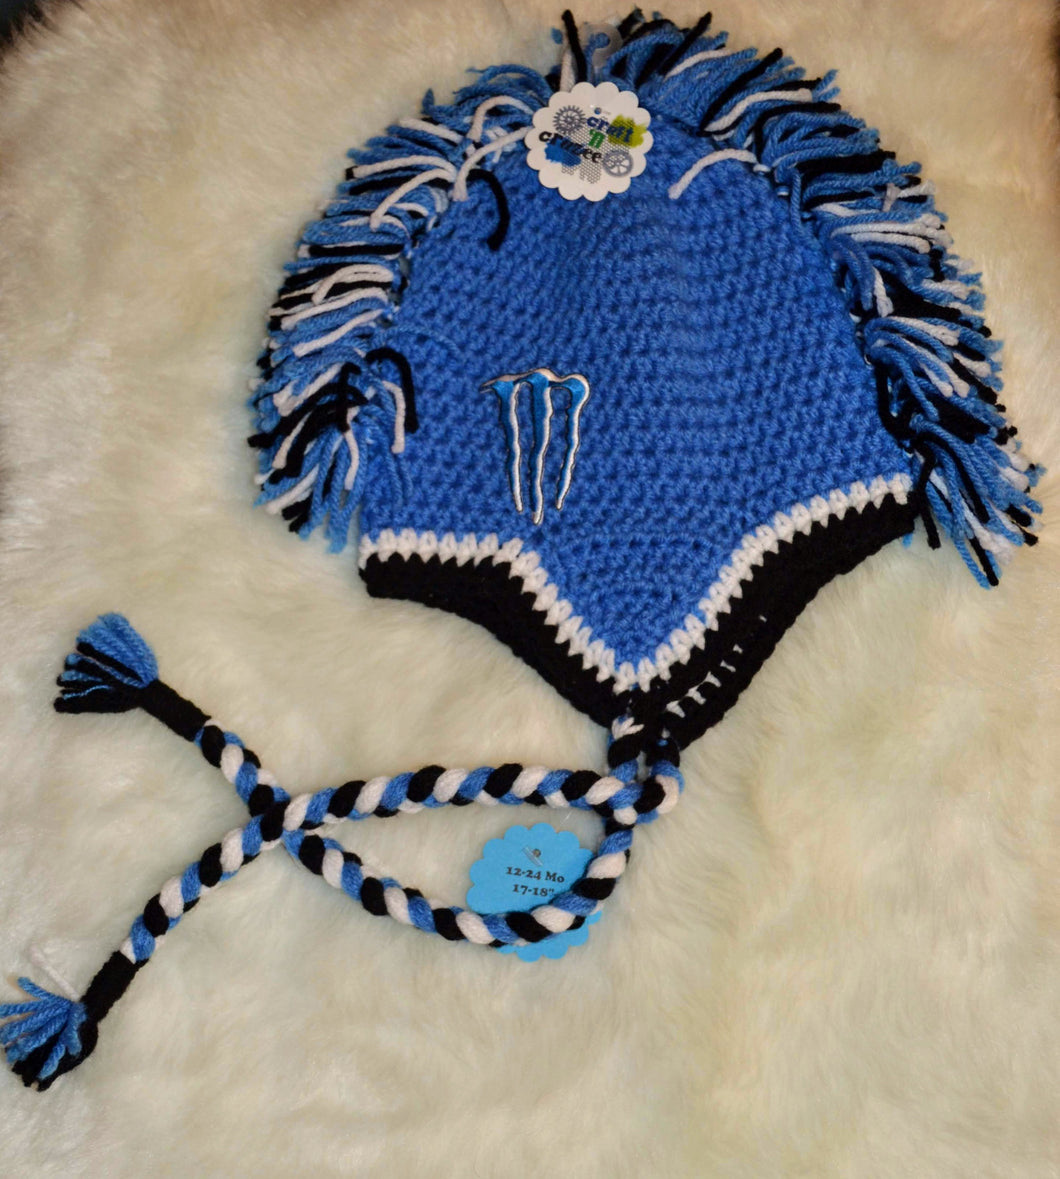 Blue Monster Mohawk Beanie - Size 12-24 Months  - Monster Energy Hat - Craft N Crazee